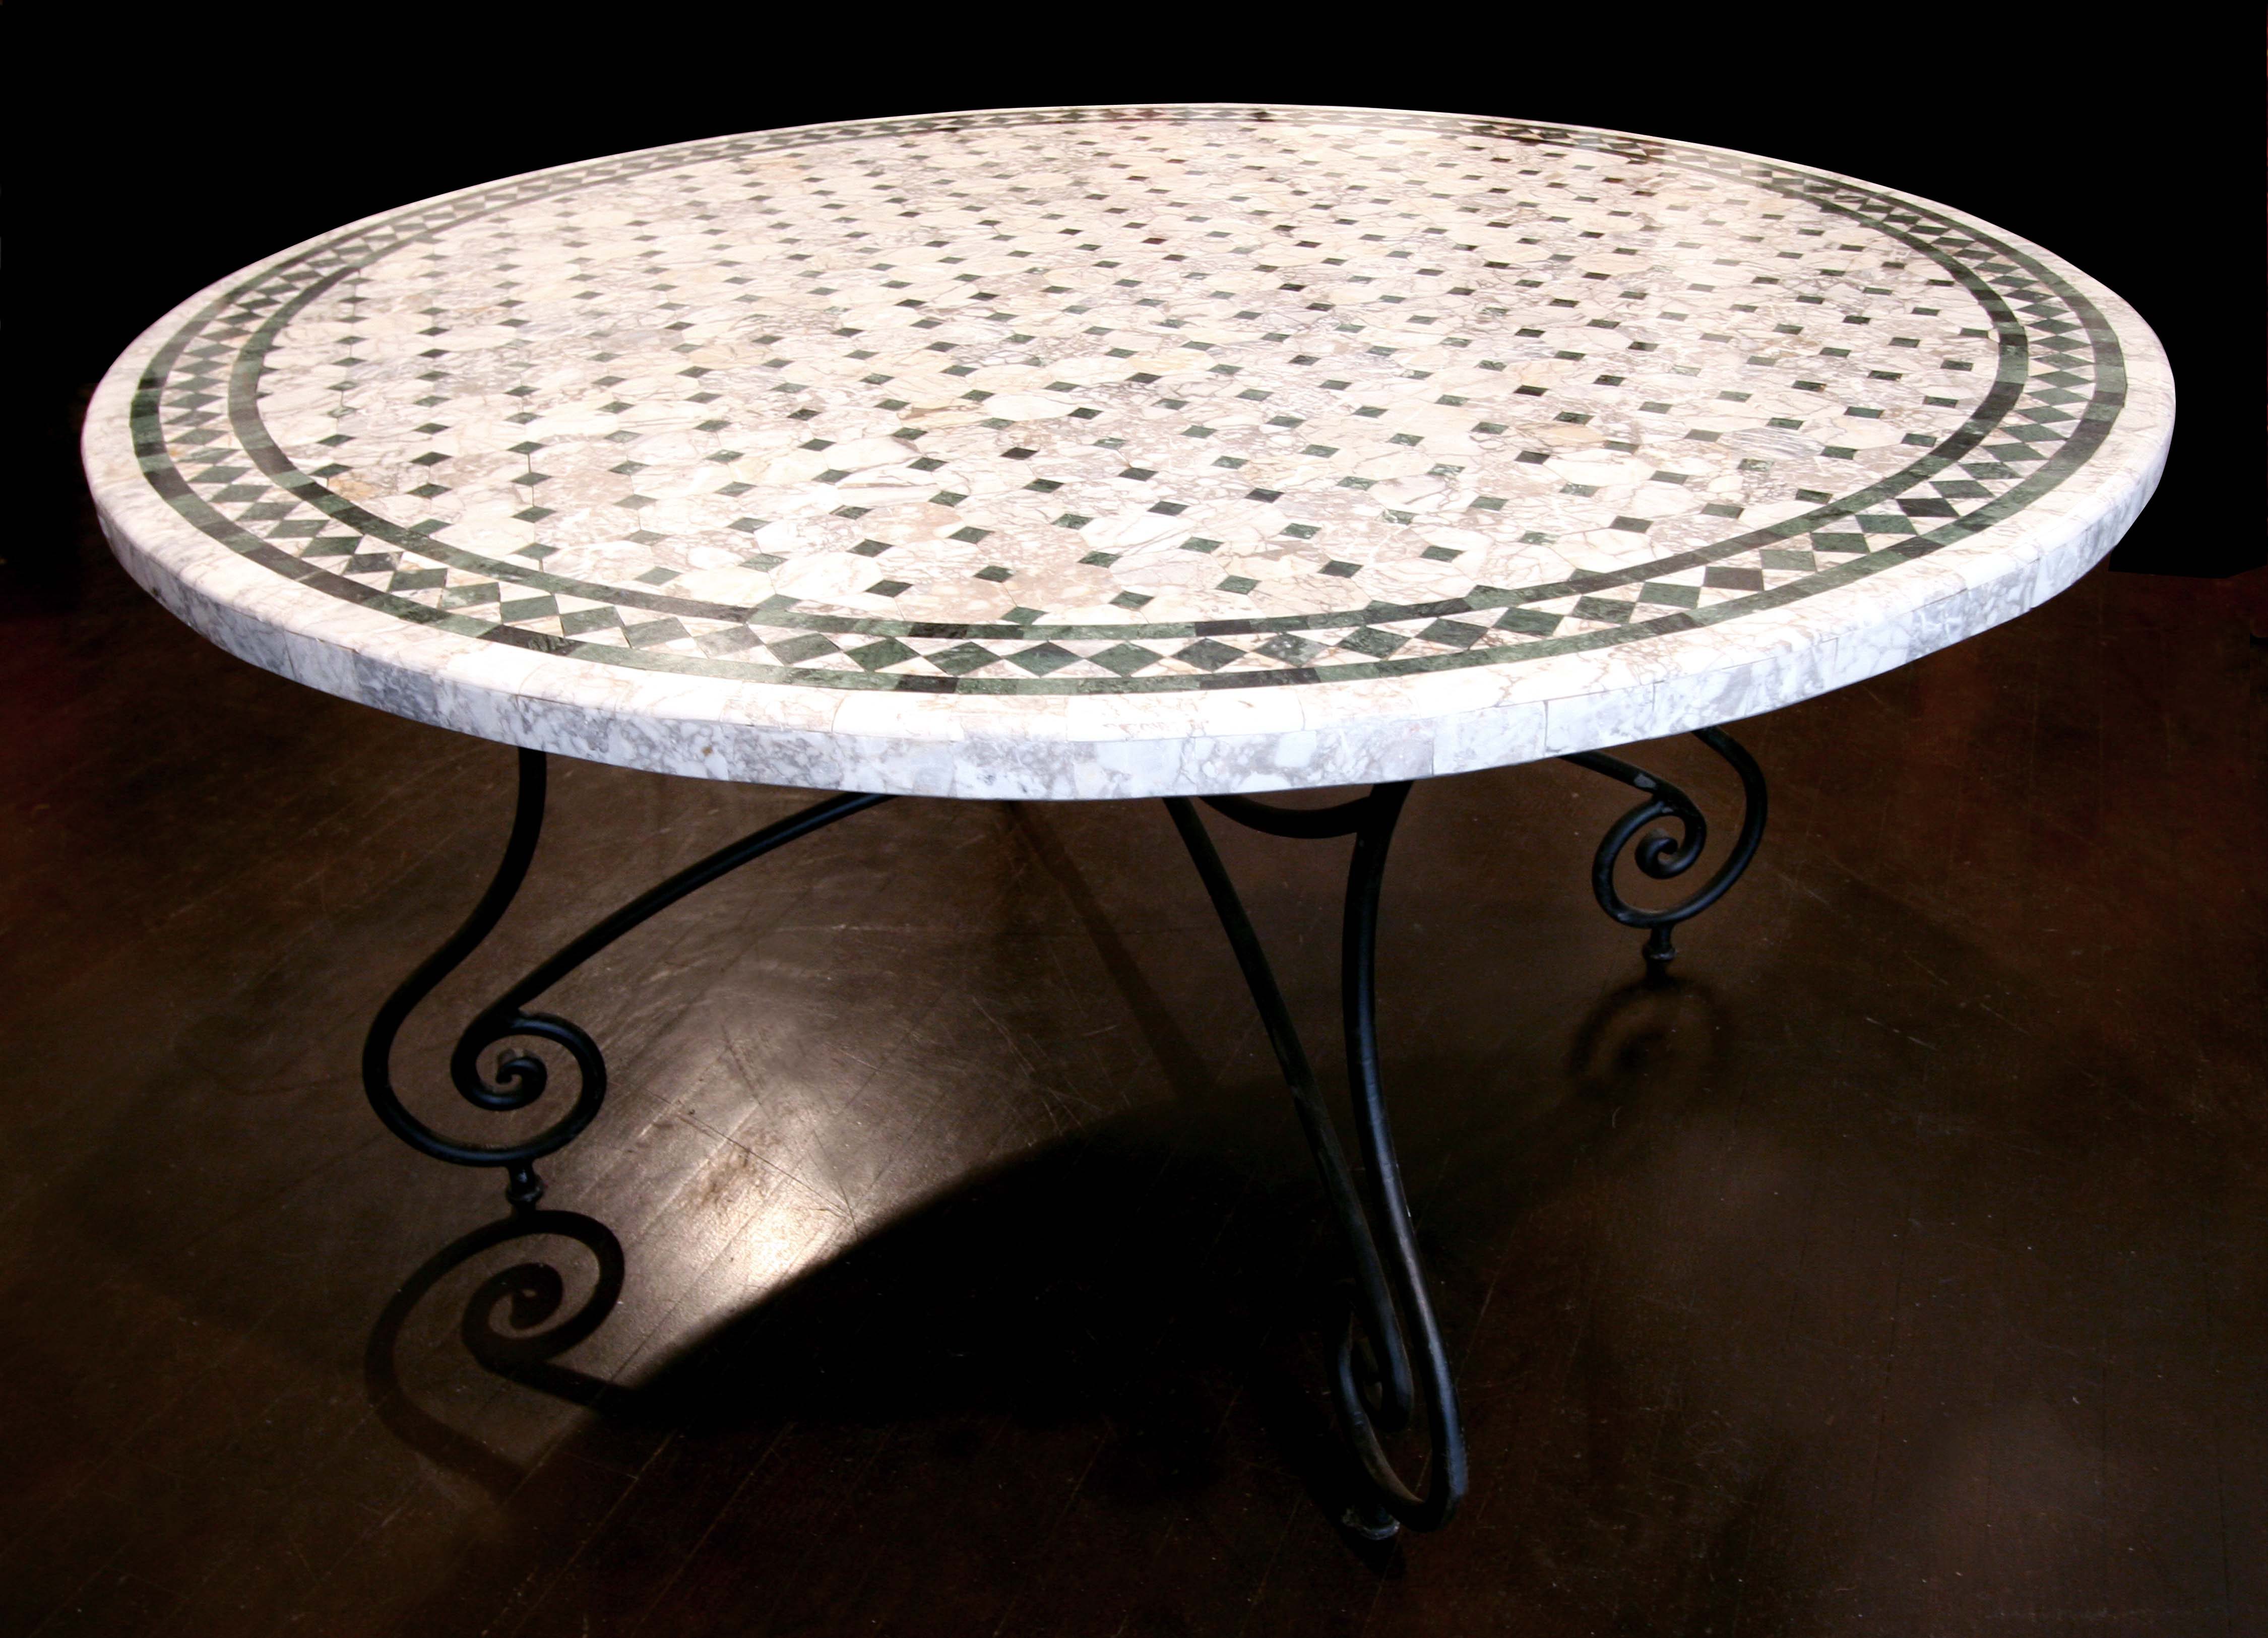 sell mosaic table, marbre table, wrought iron chair, inlaid wood chair, ethnic furniture, briar table